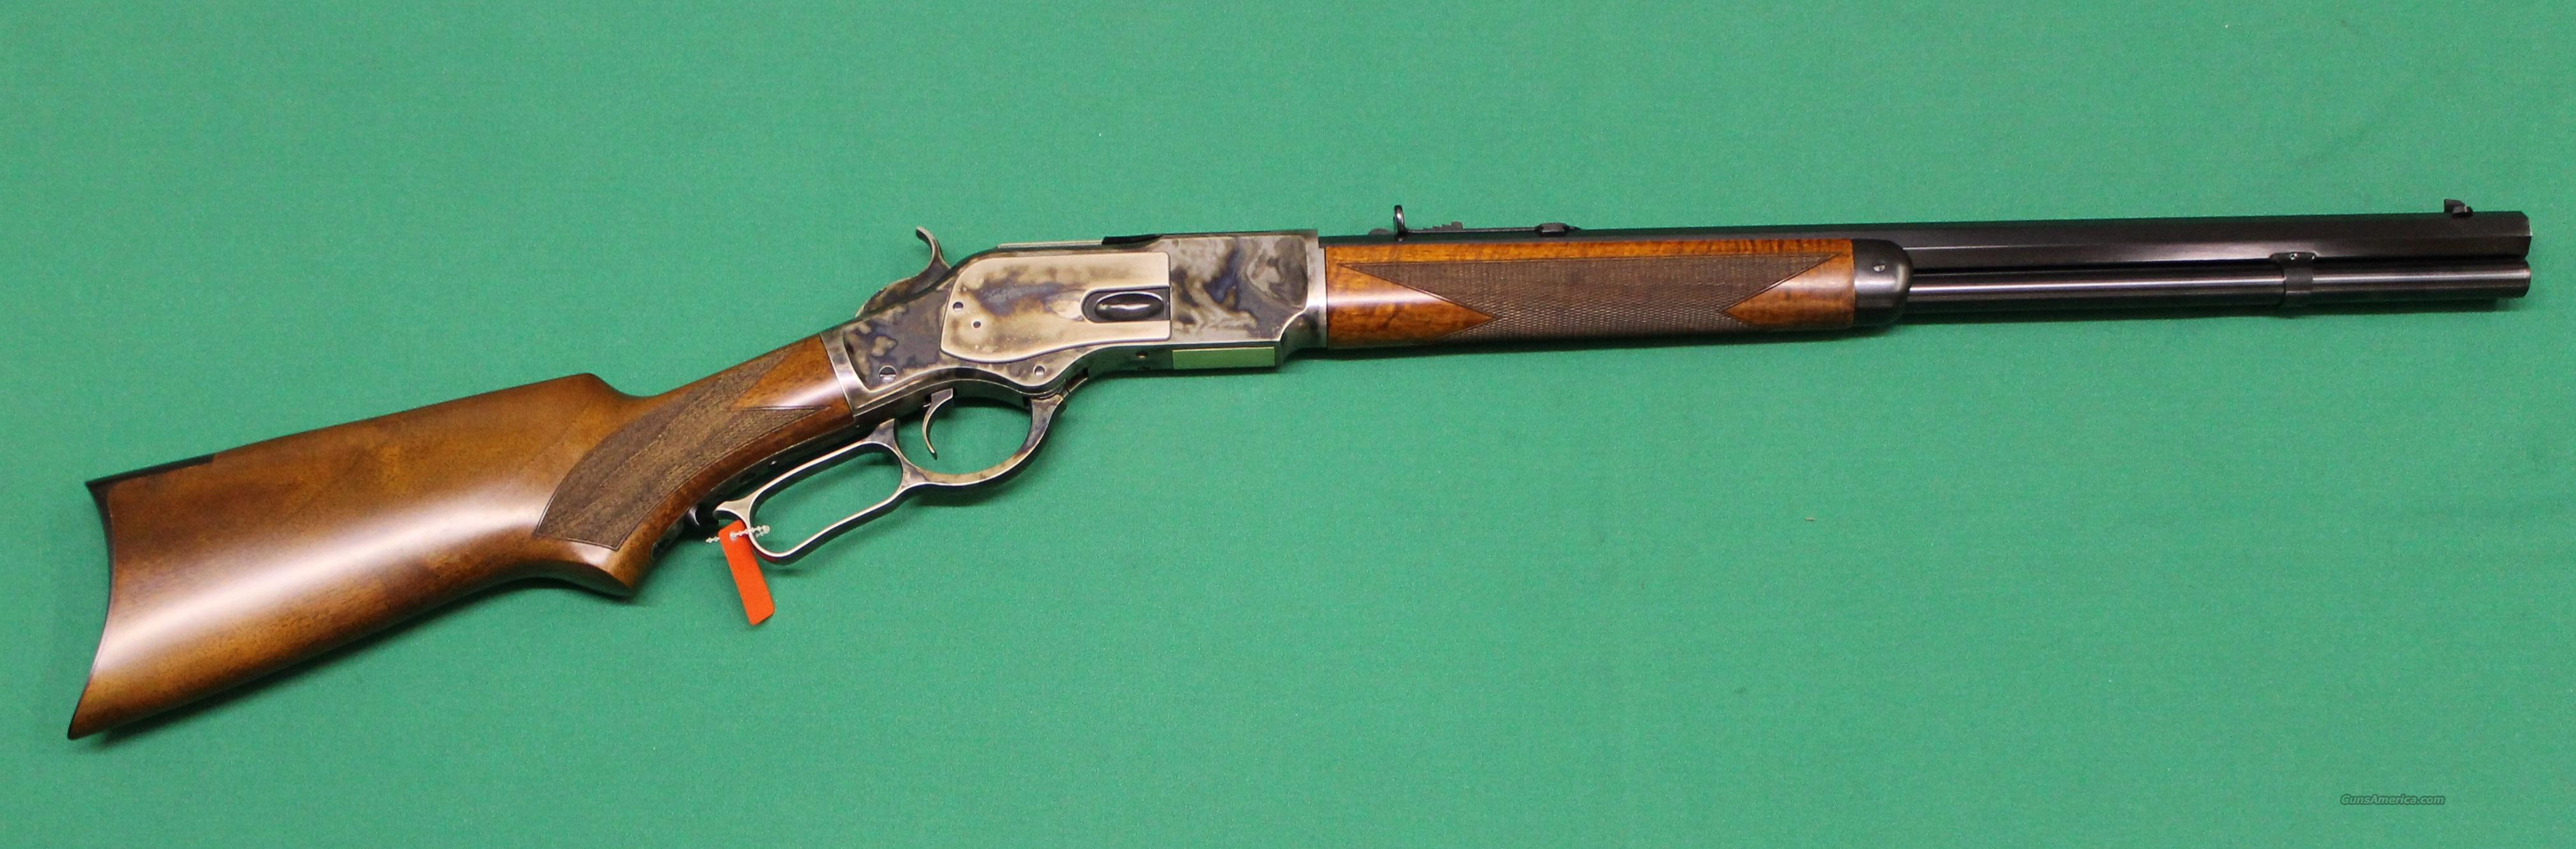 Uberti 1873 Special Sporting Short Rifle 357 Magnum, New in box  Guns > Rifles > Uberti Rifles > Lever Action